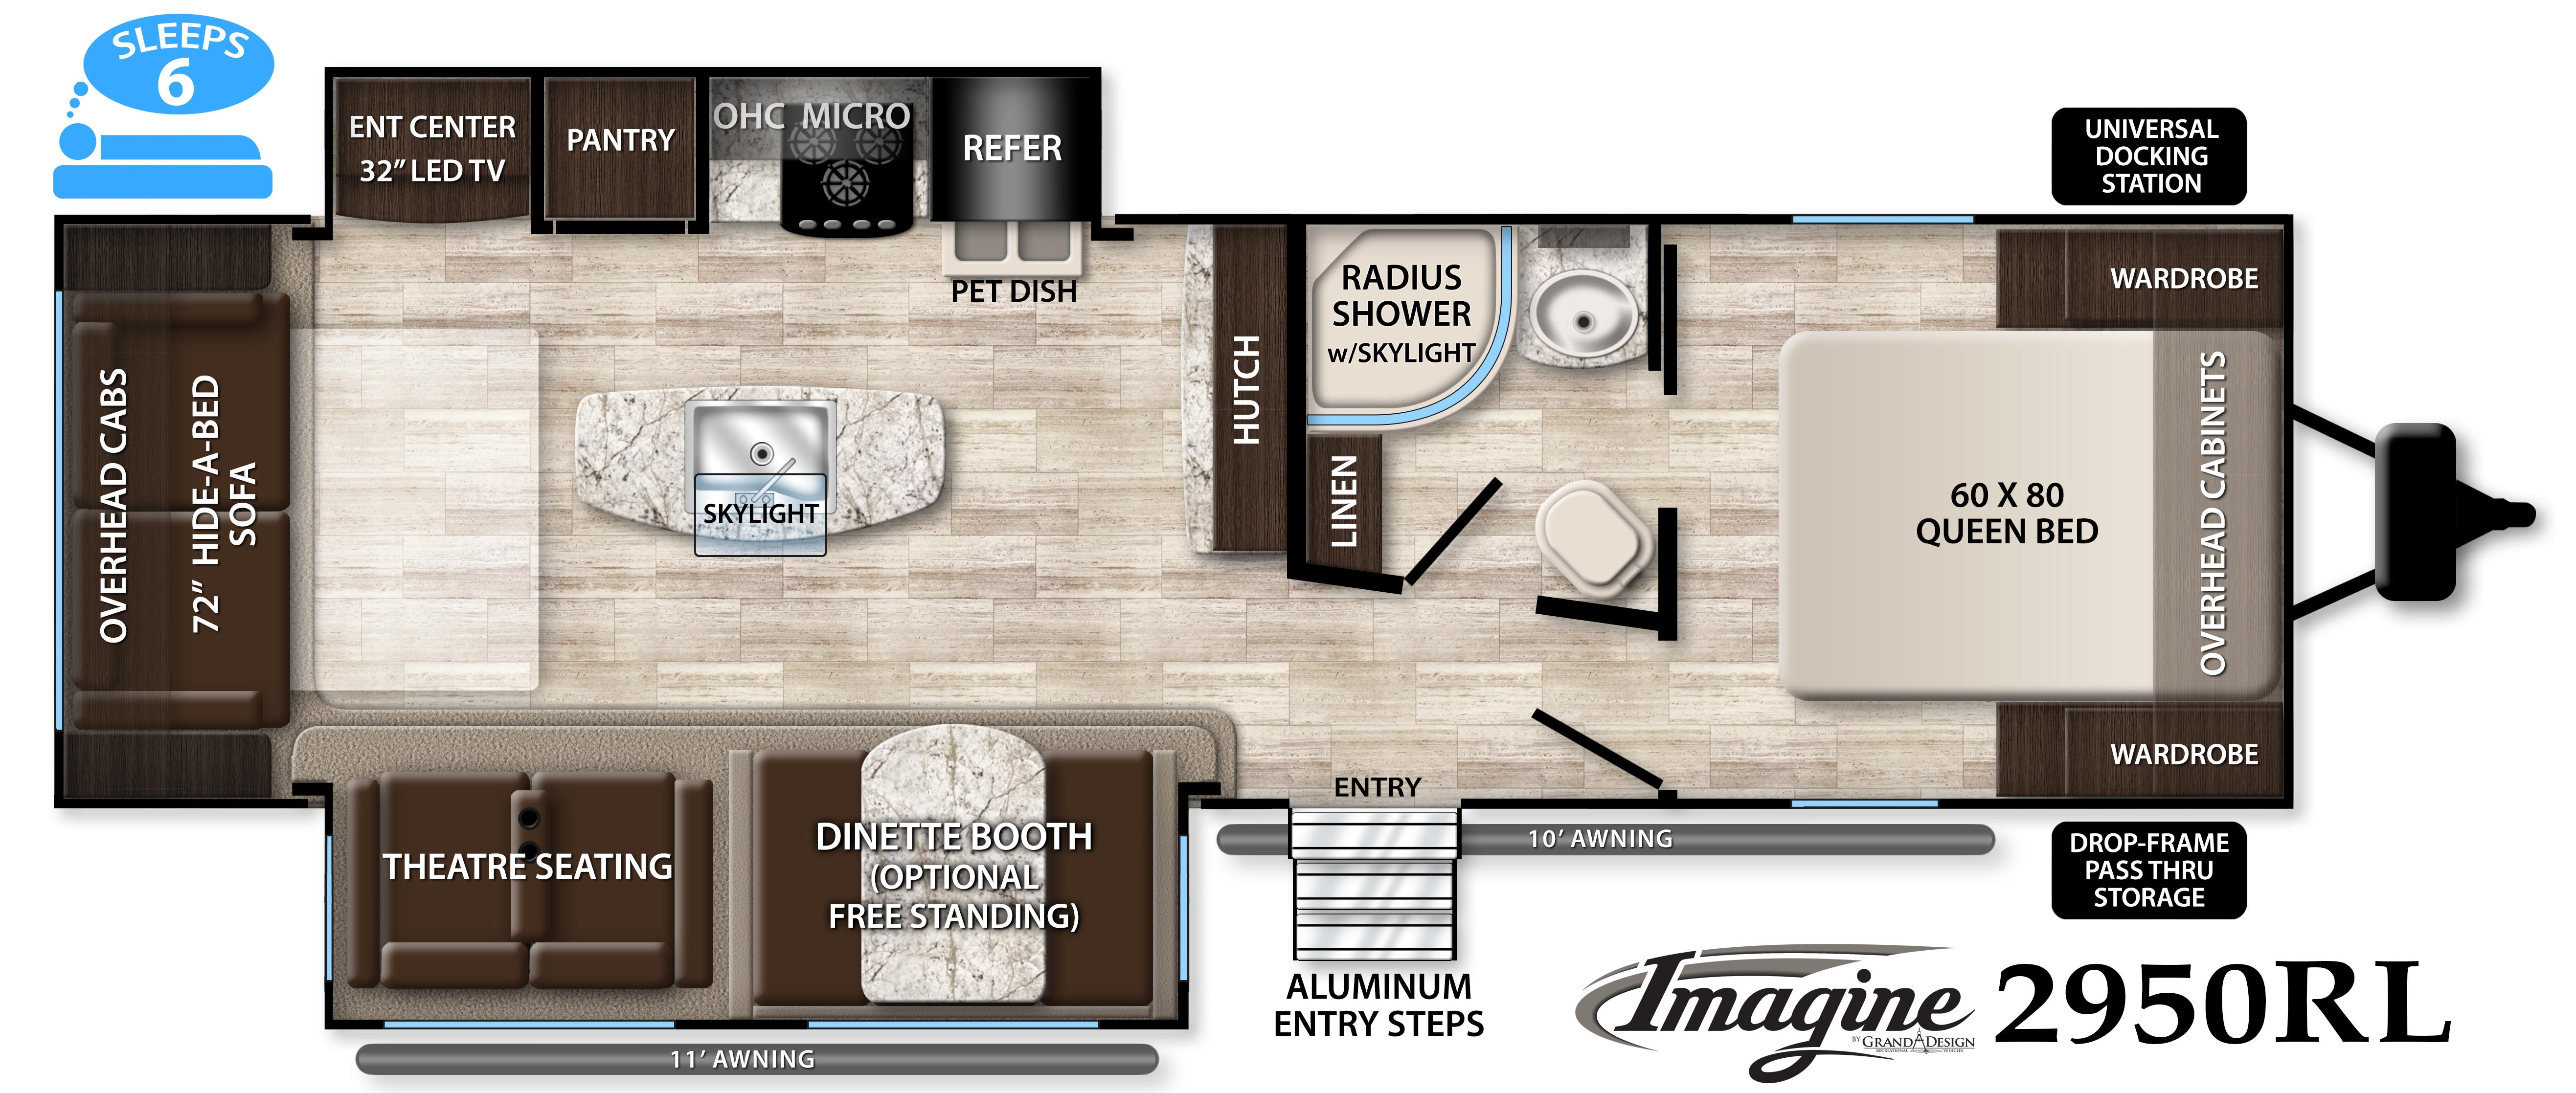 Media center imagine 2970rl grand design for Grand design floor plans